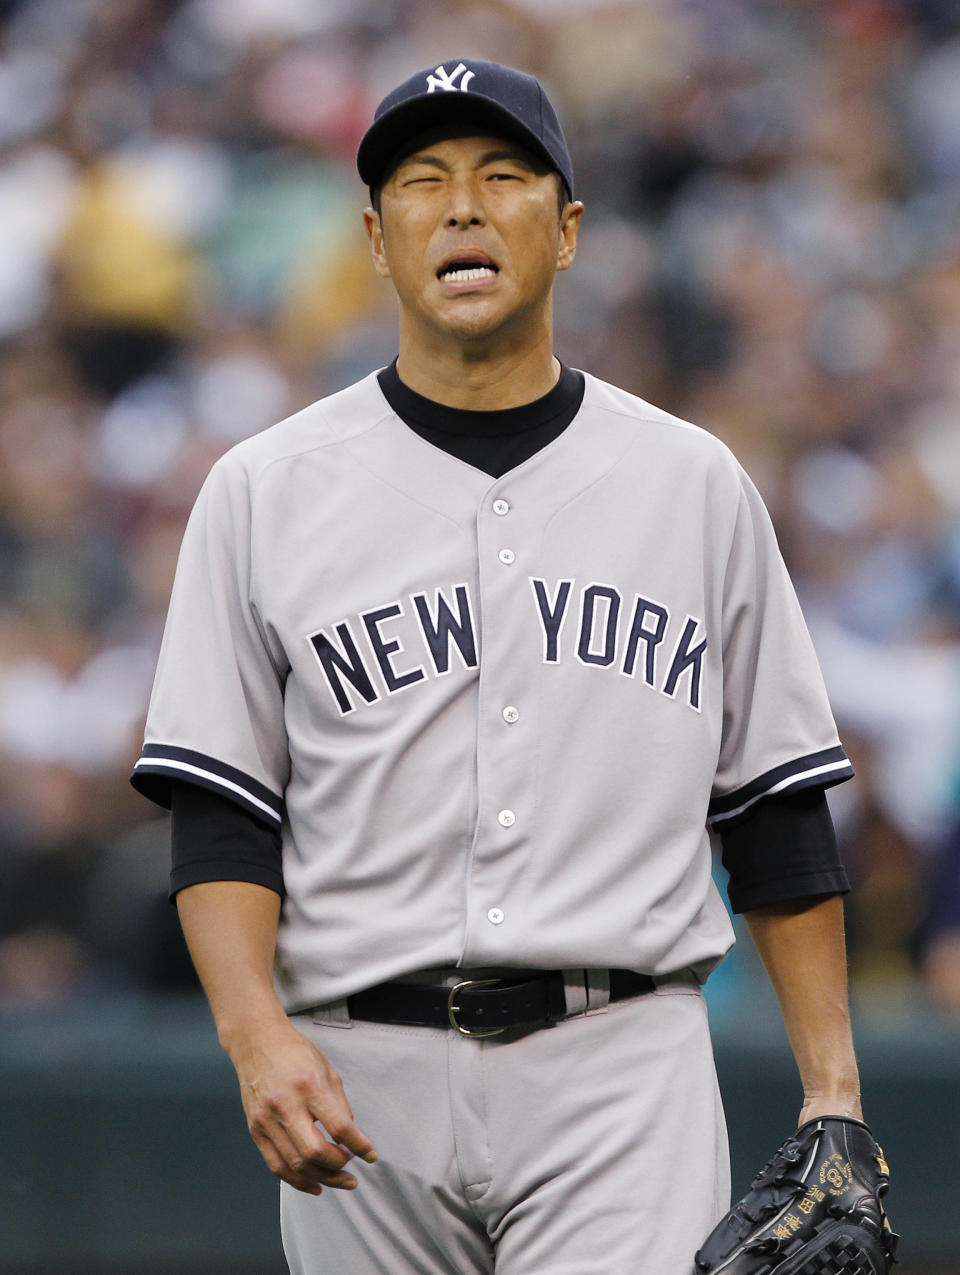 New York Yankees starting pitcher Hiroki Kuroda reacts after giving up a hit to the Seattle Mariners in the first inning of a baseball game Monday, July 23, 2012, in Seattle. (AP Photo/Elaine Thompson)